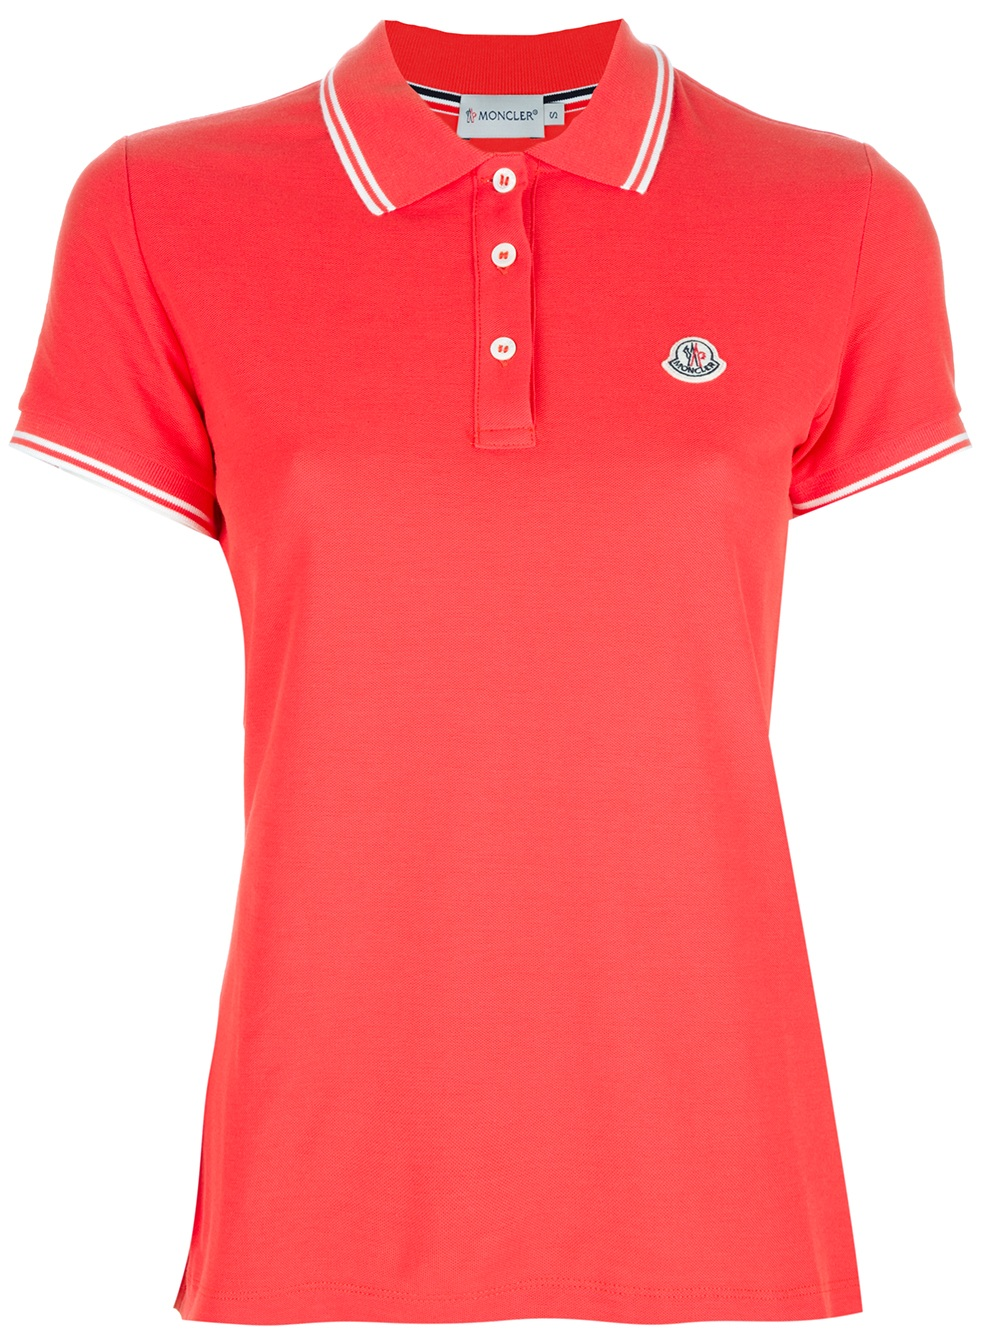 Moncler Pique Polo Shirt In Red Lyst